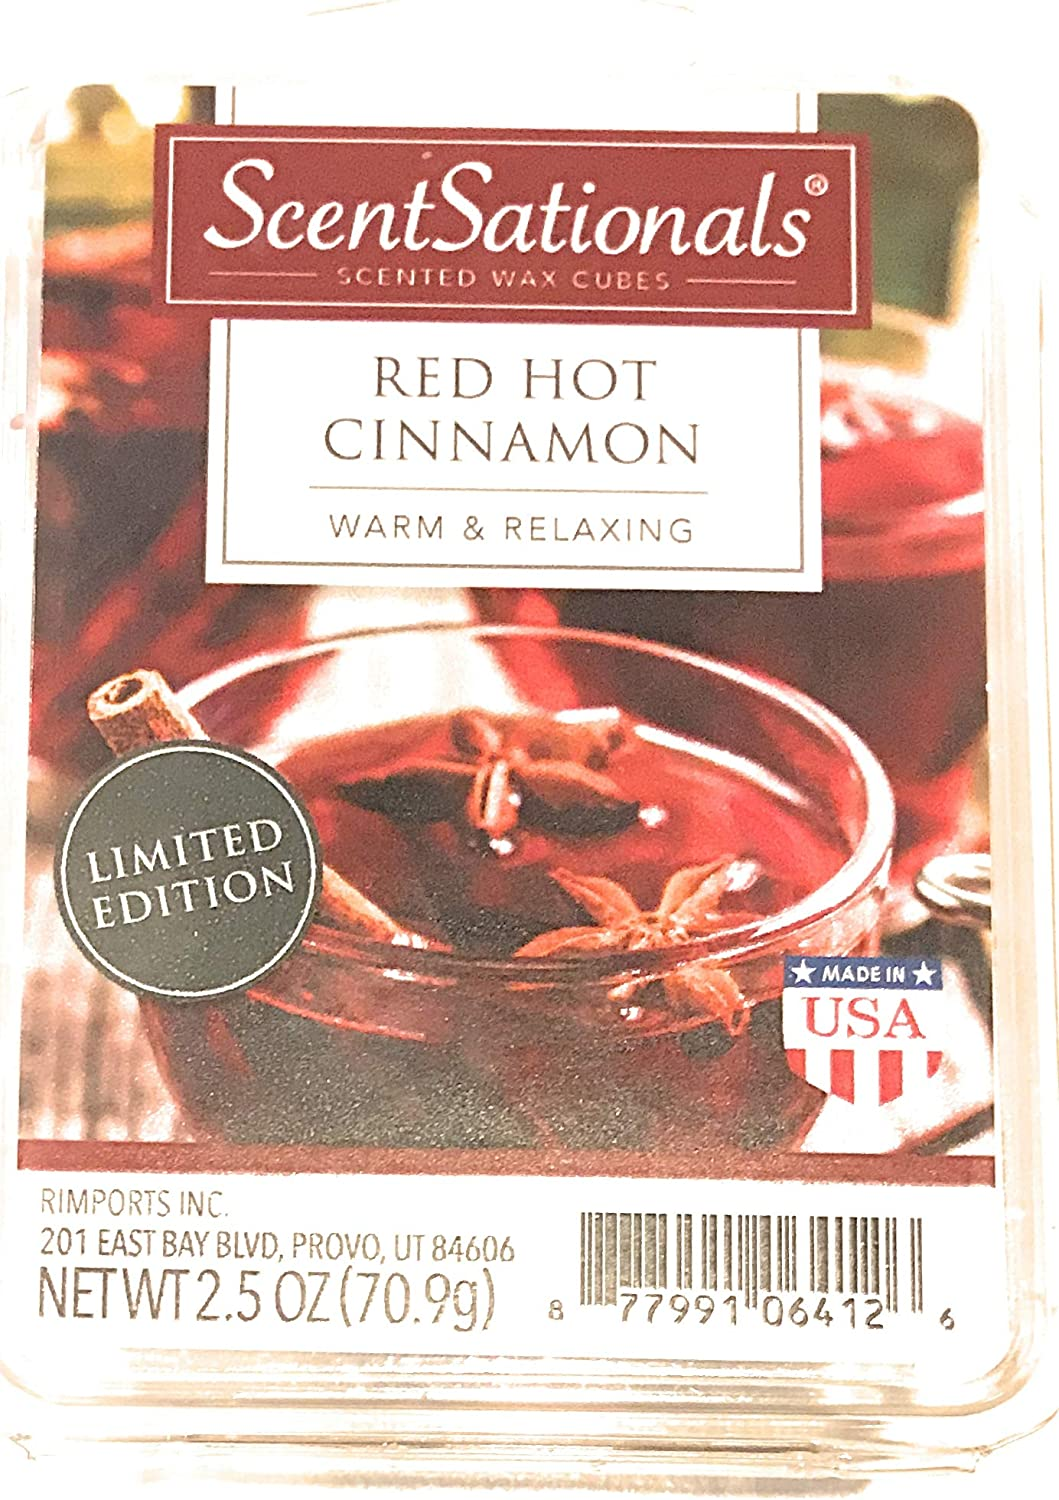 ScentSationals Red Hot Cinnamon Wax Cubes - 2017 Limited Edition